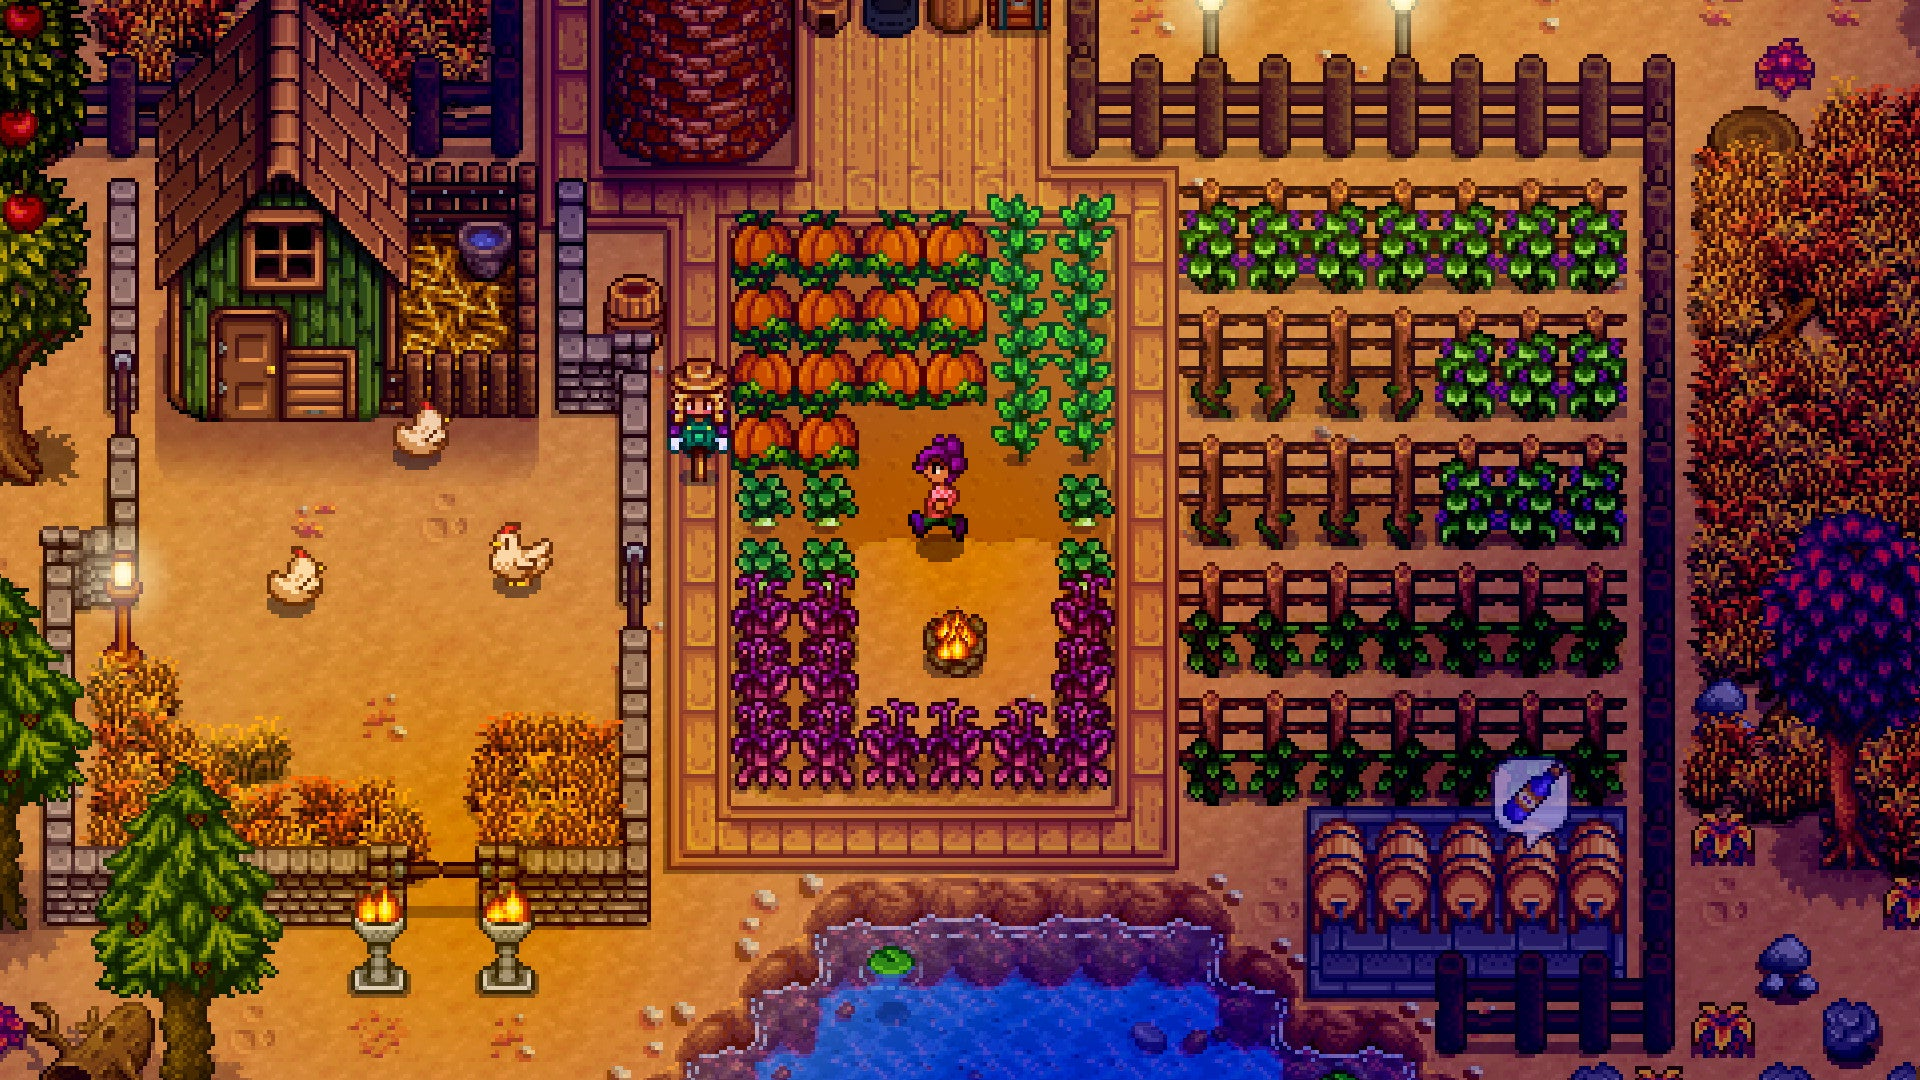 Steam's Latest Hit Is A Game About Farming And Relationships